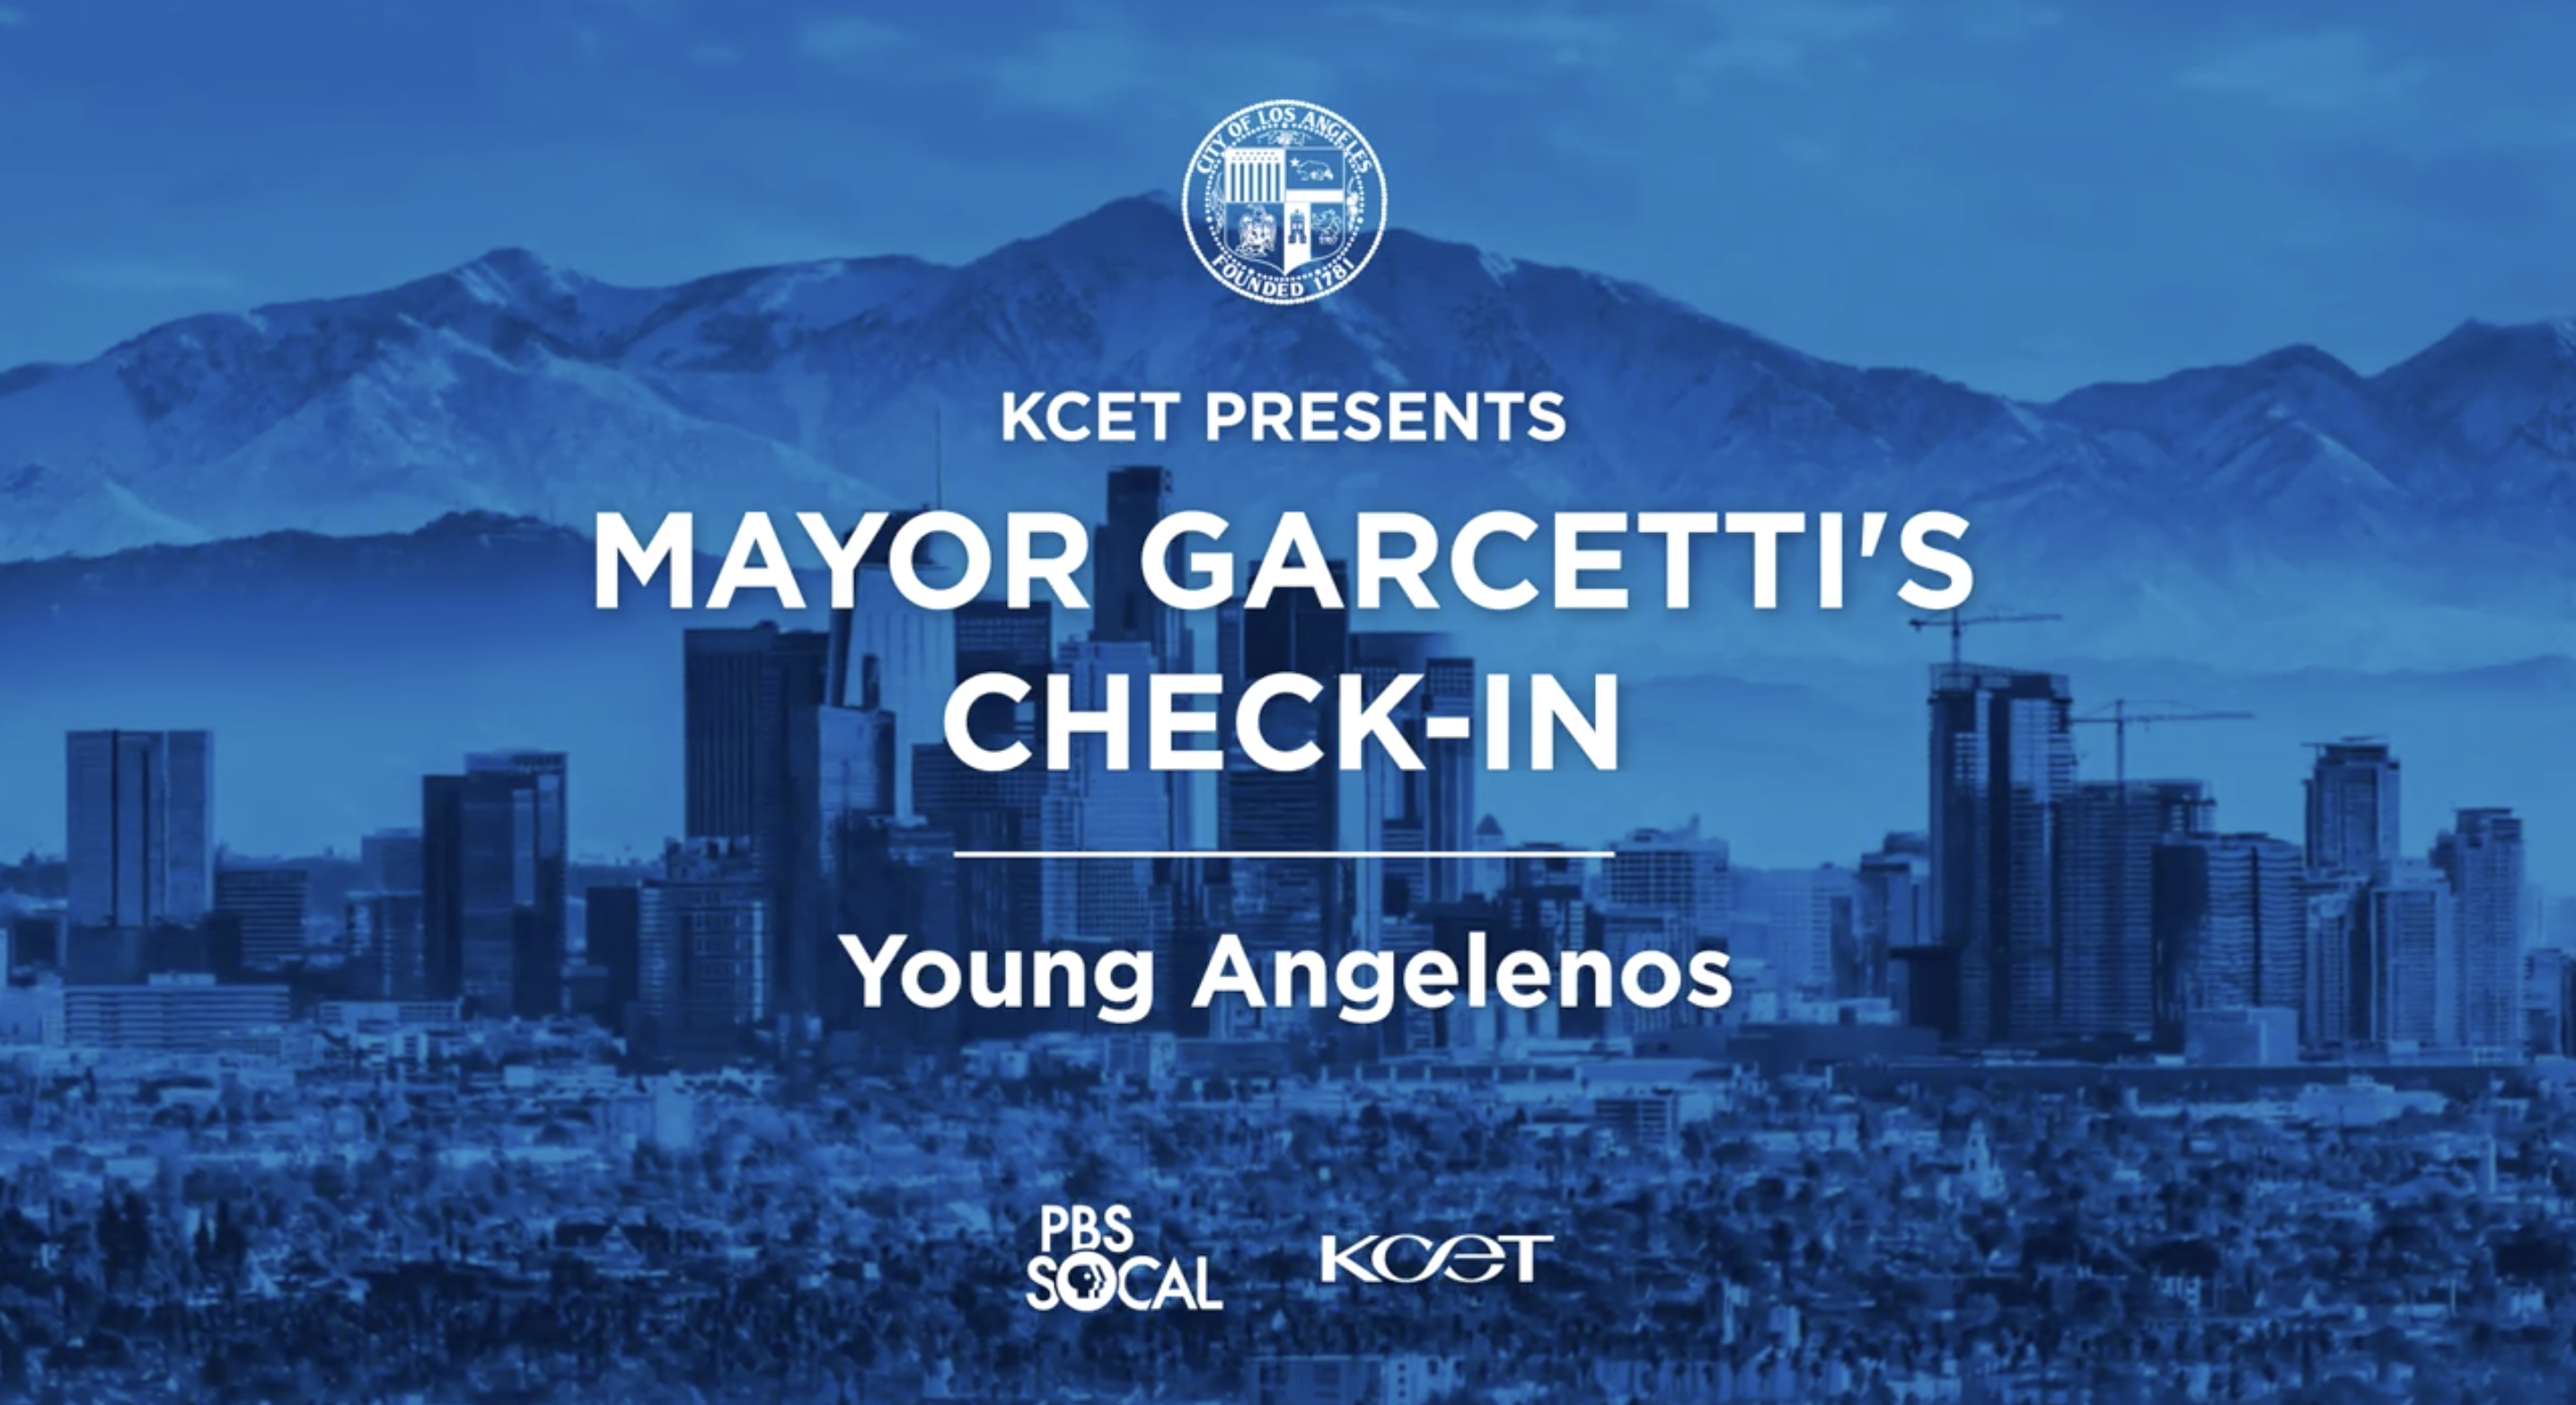 """KCET Presents: Mayor Garcetti's Check-In: Young Angelenos"""